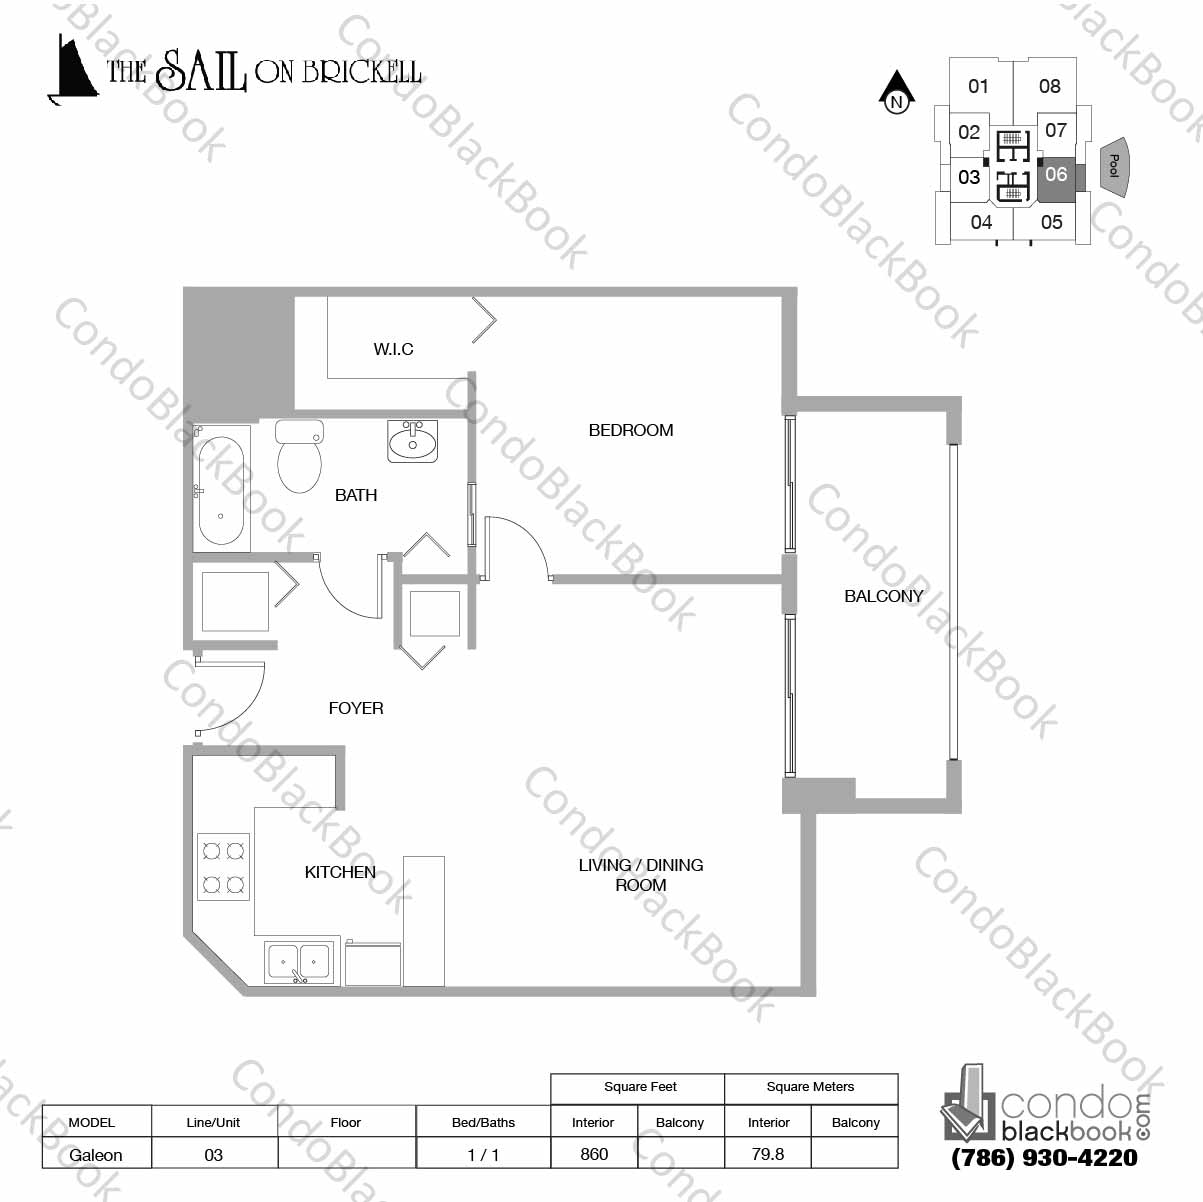 Floor plan for Sail on Brickell Brickell Miami, model Galeon, line 06, 1 / 1 bedrooms, 860 sq ft